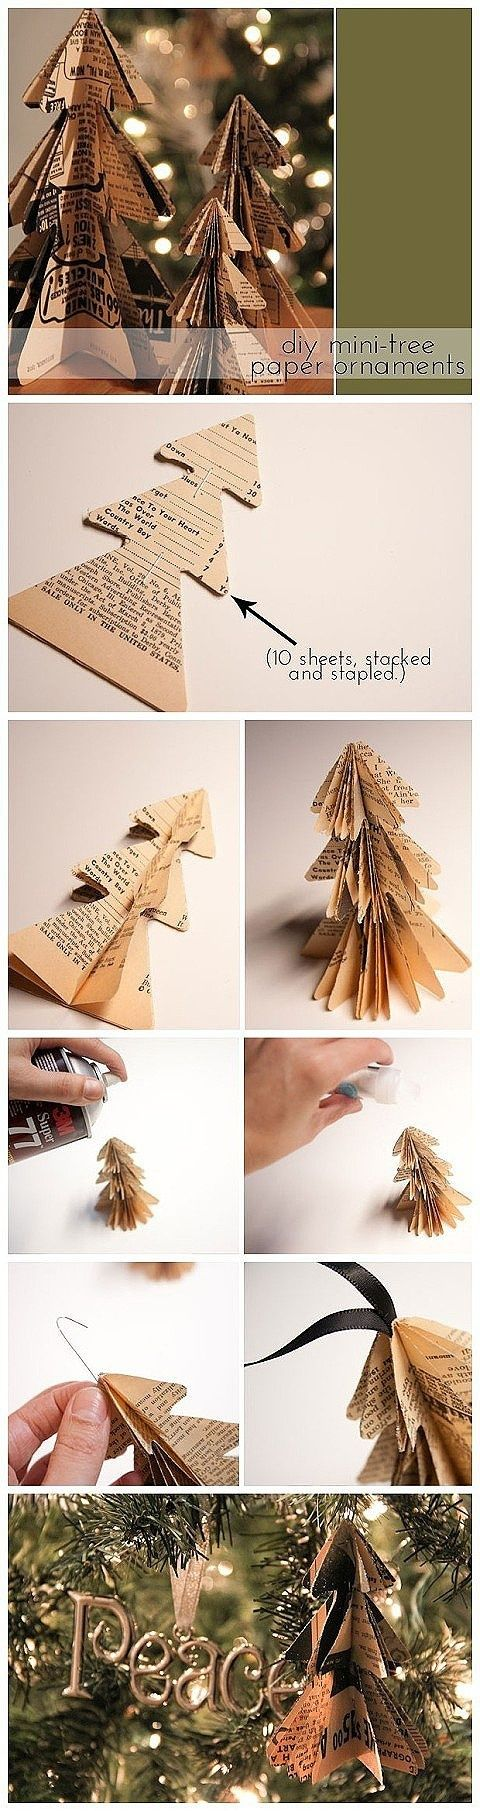 Creative Christmas Tree Ideas_09.jpg